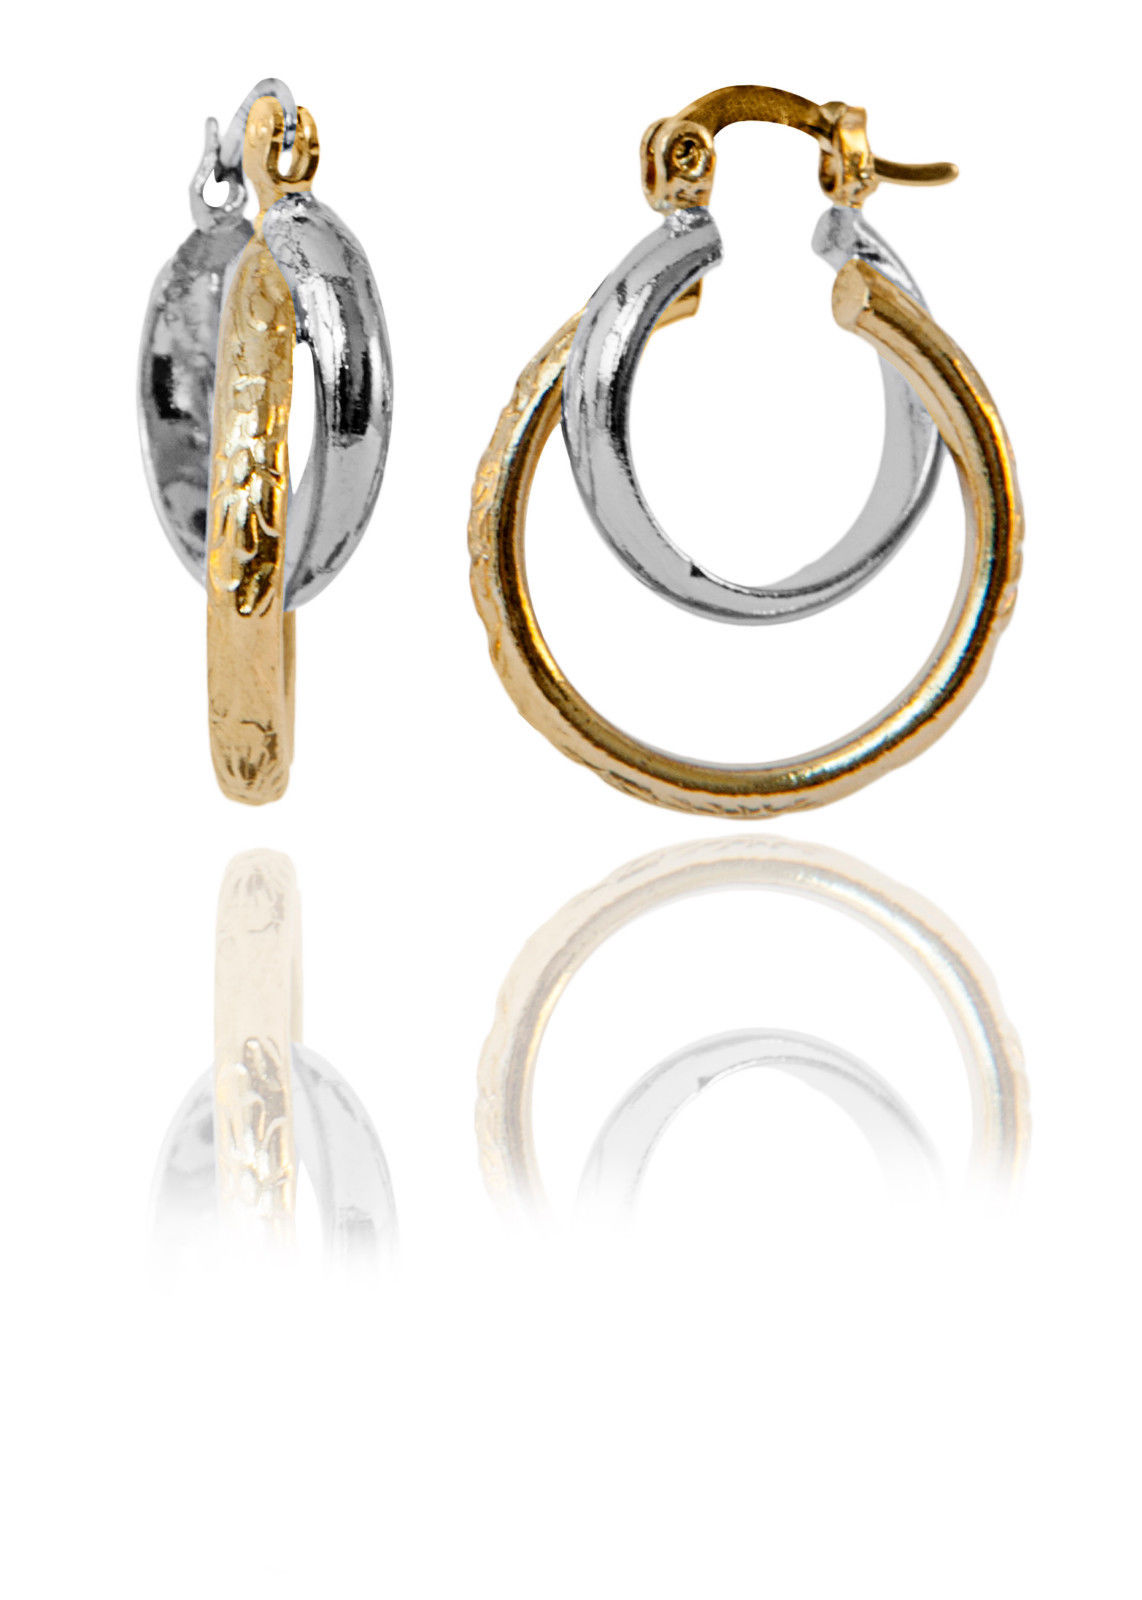 Two-Tone Earrings with patterned 18K Gold